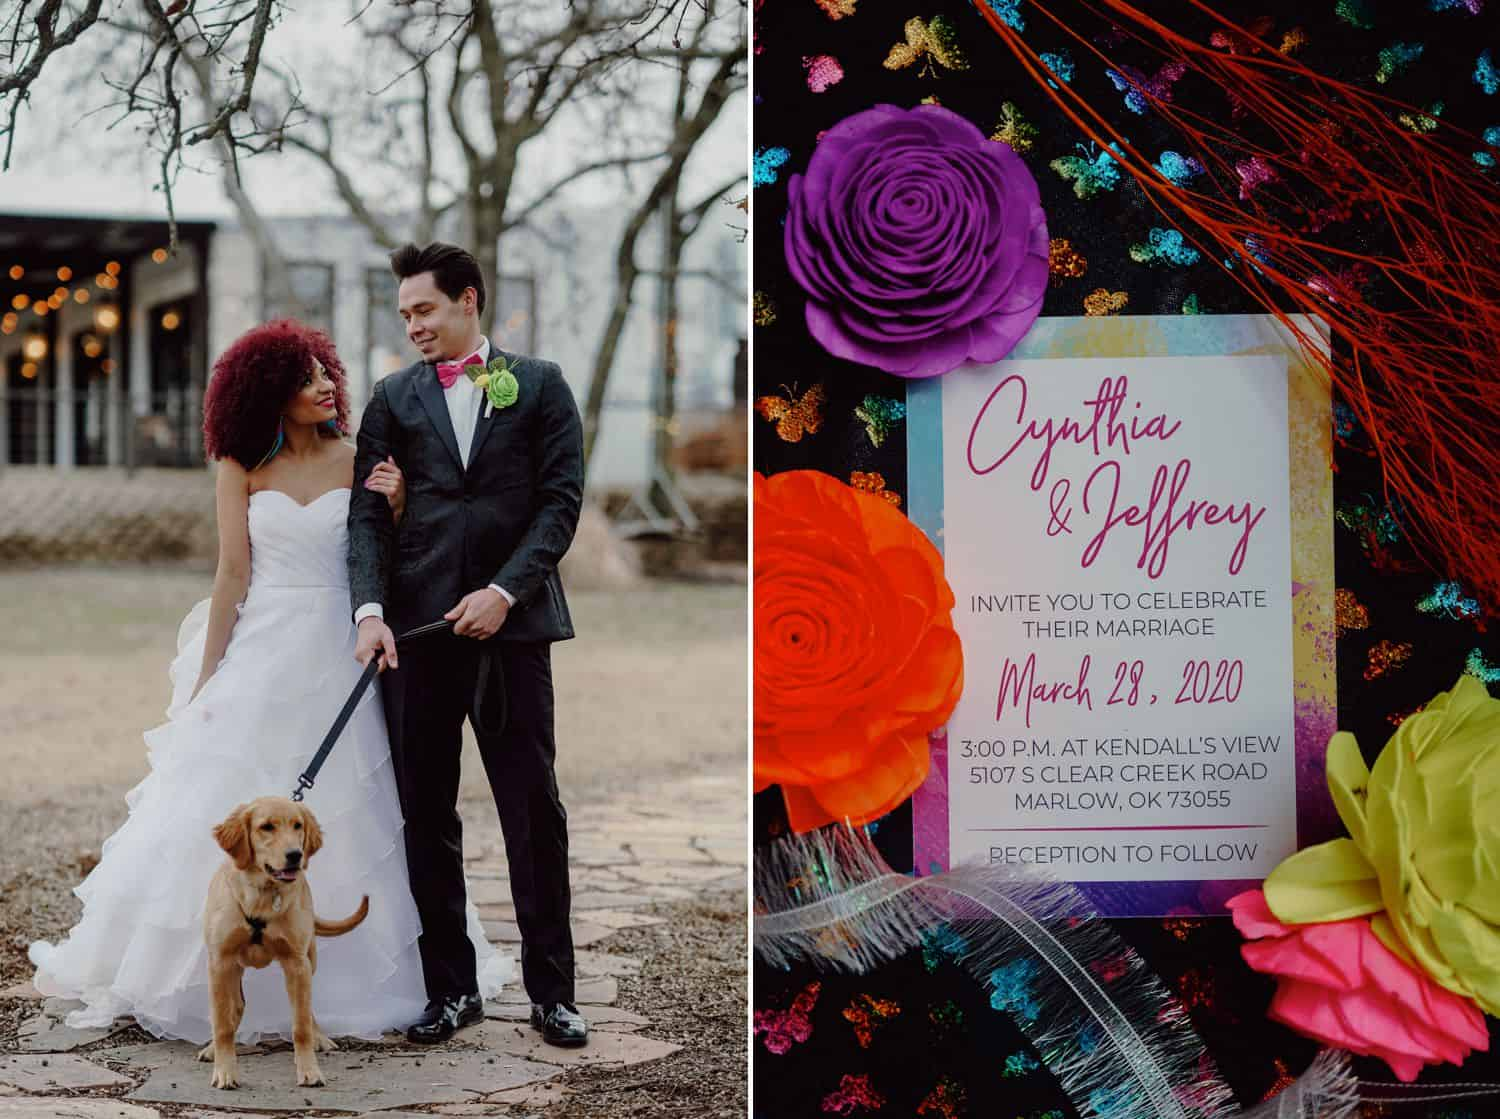 A bride and groom pose with their tiny dog in front of their wedding venue